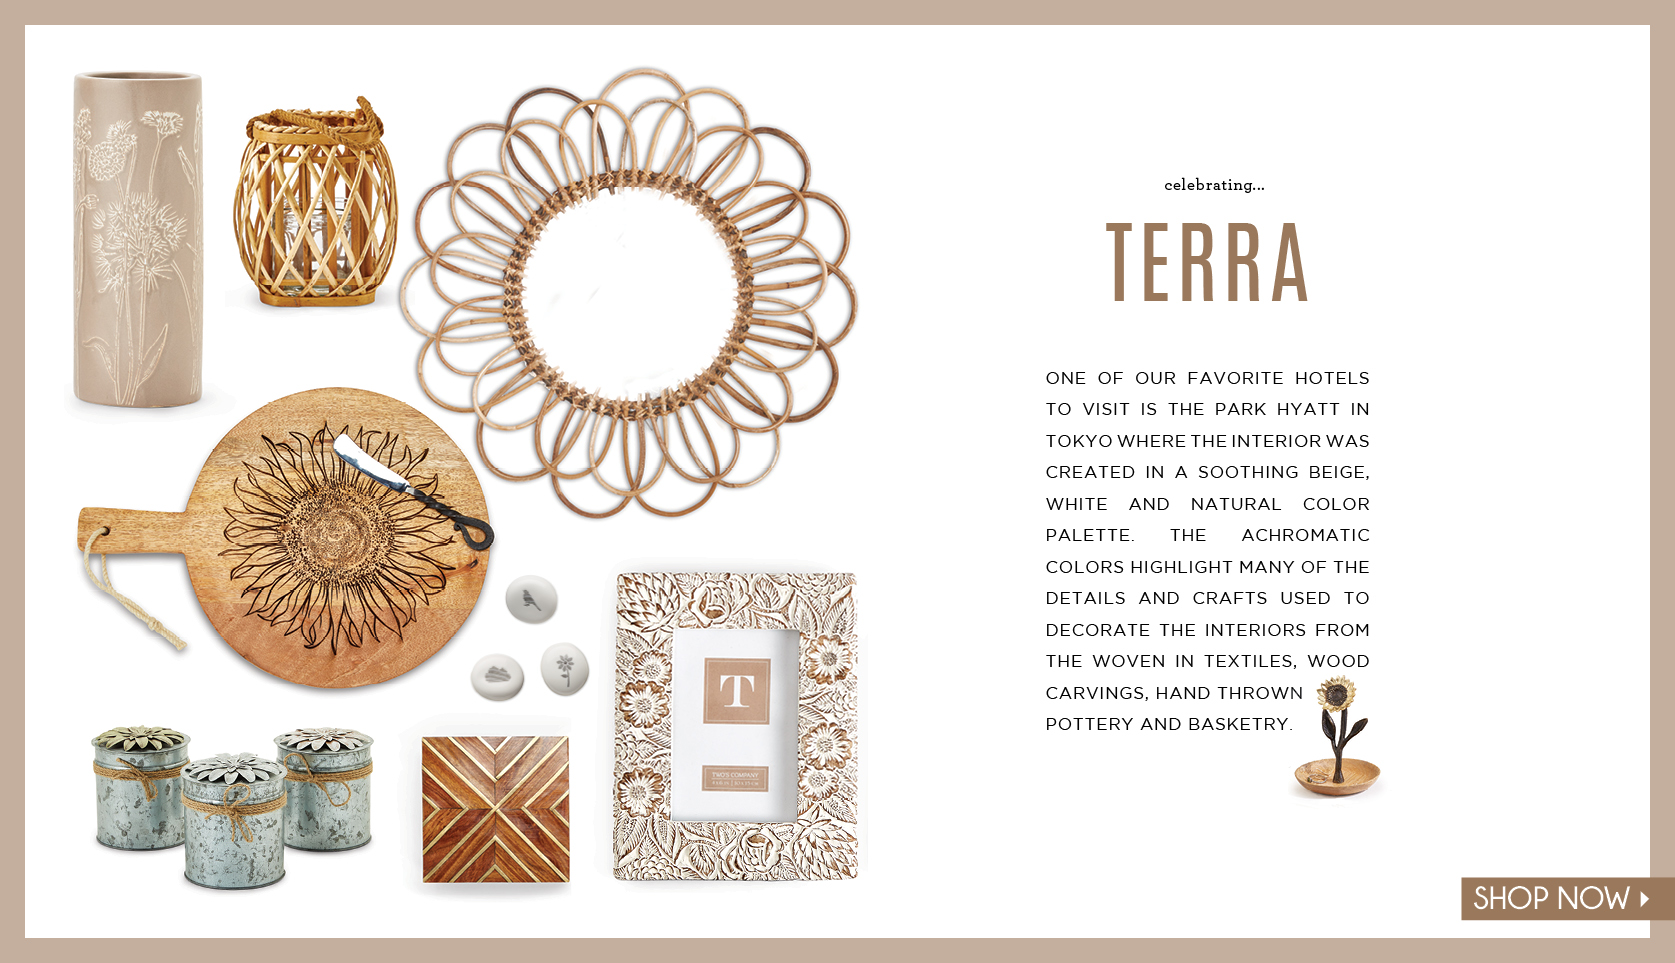 Terra Collection image